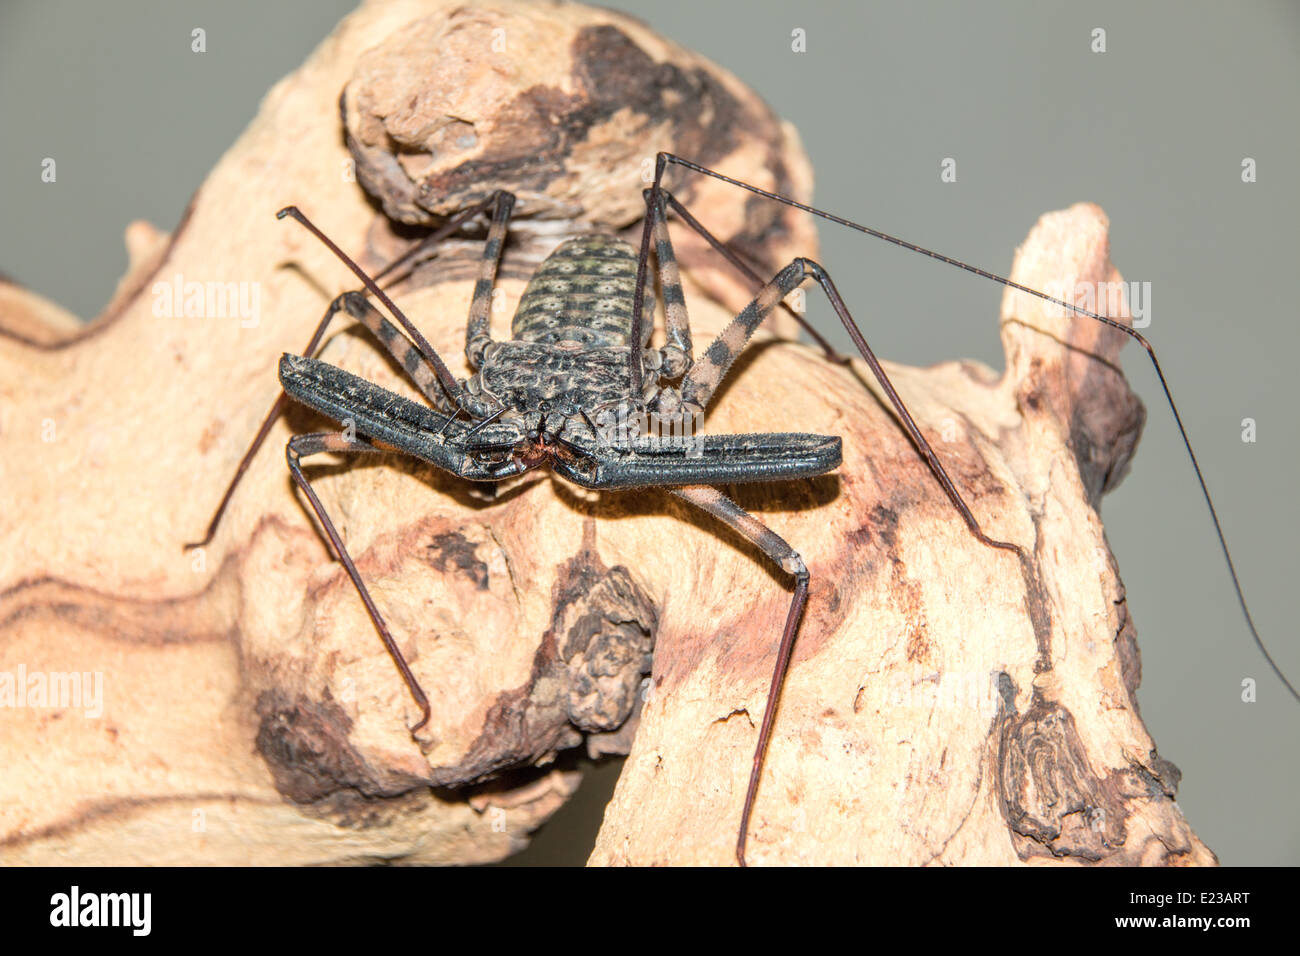 Tail-less whip Scorpion on Mopano wood( 4of 7 ) - Stock Image